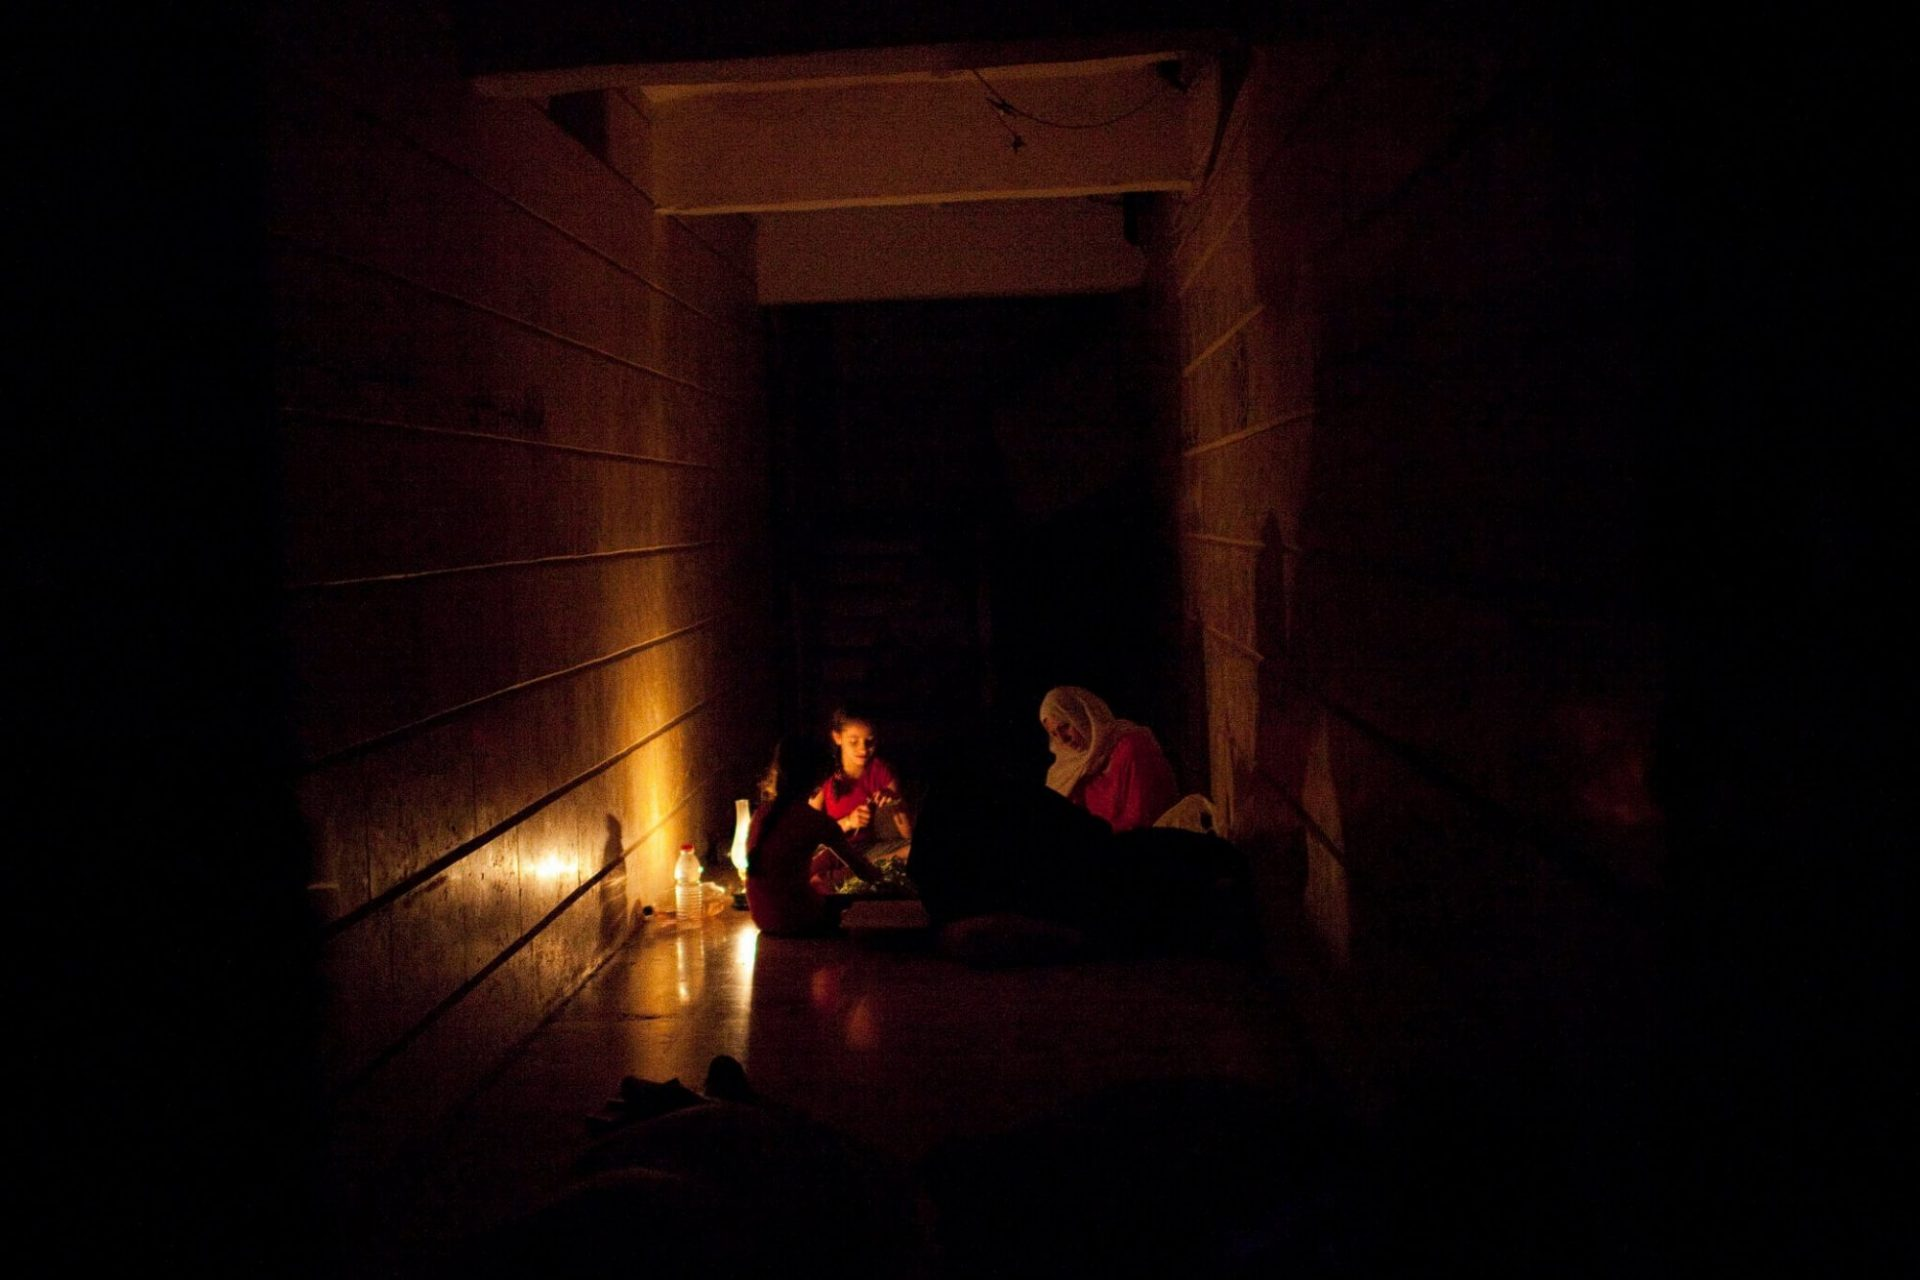 A family takes shelter in the hallway of their apartment building in the Salaheddin neighborhood of Aleppo, Syria, on Thursday, August 2, 2012 during a bout of heavy shelling that hits the area frequently from Assad army positions. Salaheddin, the most restive neighborhood that saw the biggest anti-government demonstrations throughout the revolution has been hit hard, is almost cleared of all its residents while mostly Free Syrian Army fighters remain.